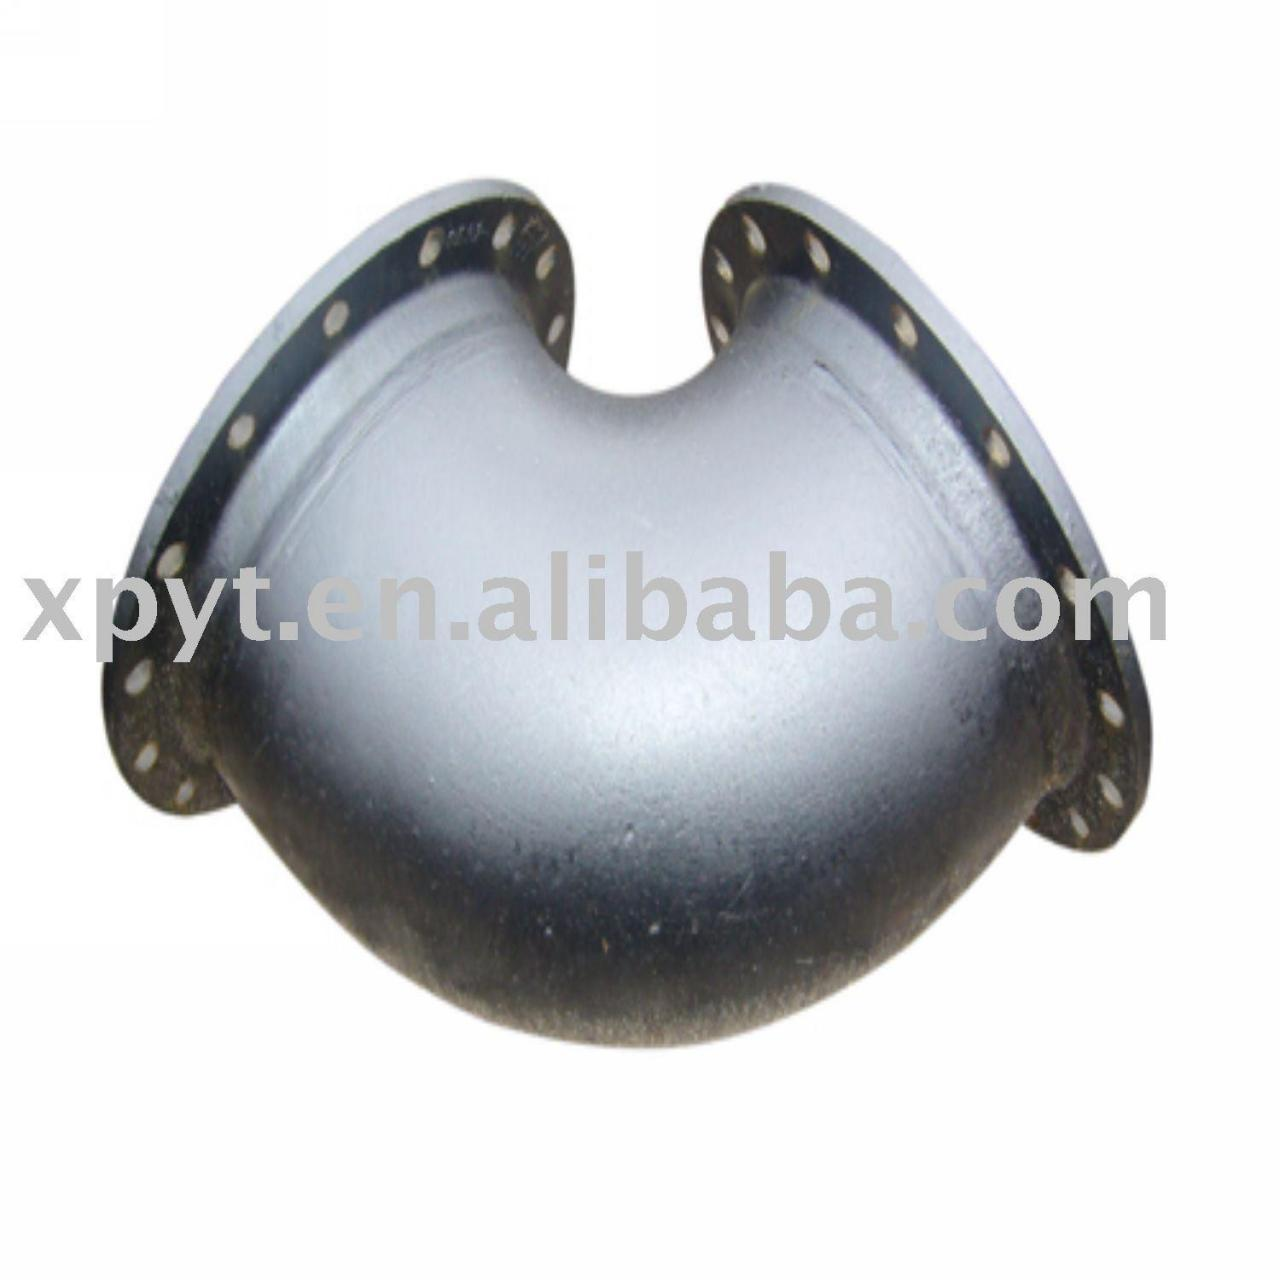 Ductile iron pipe fitting-Double flange bend Manufactures